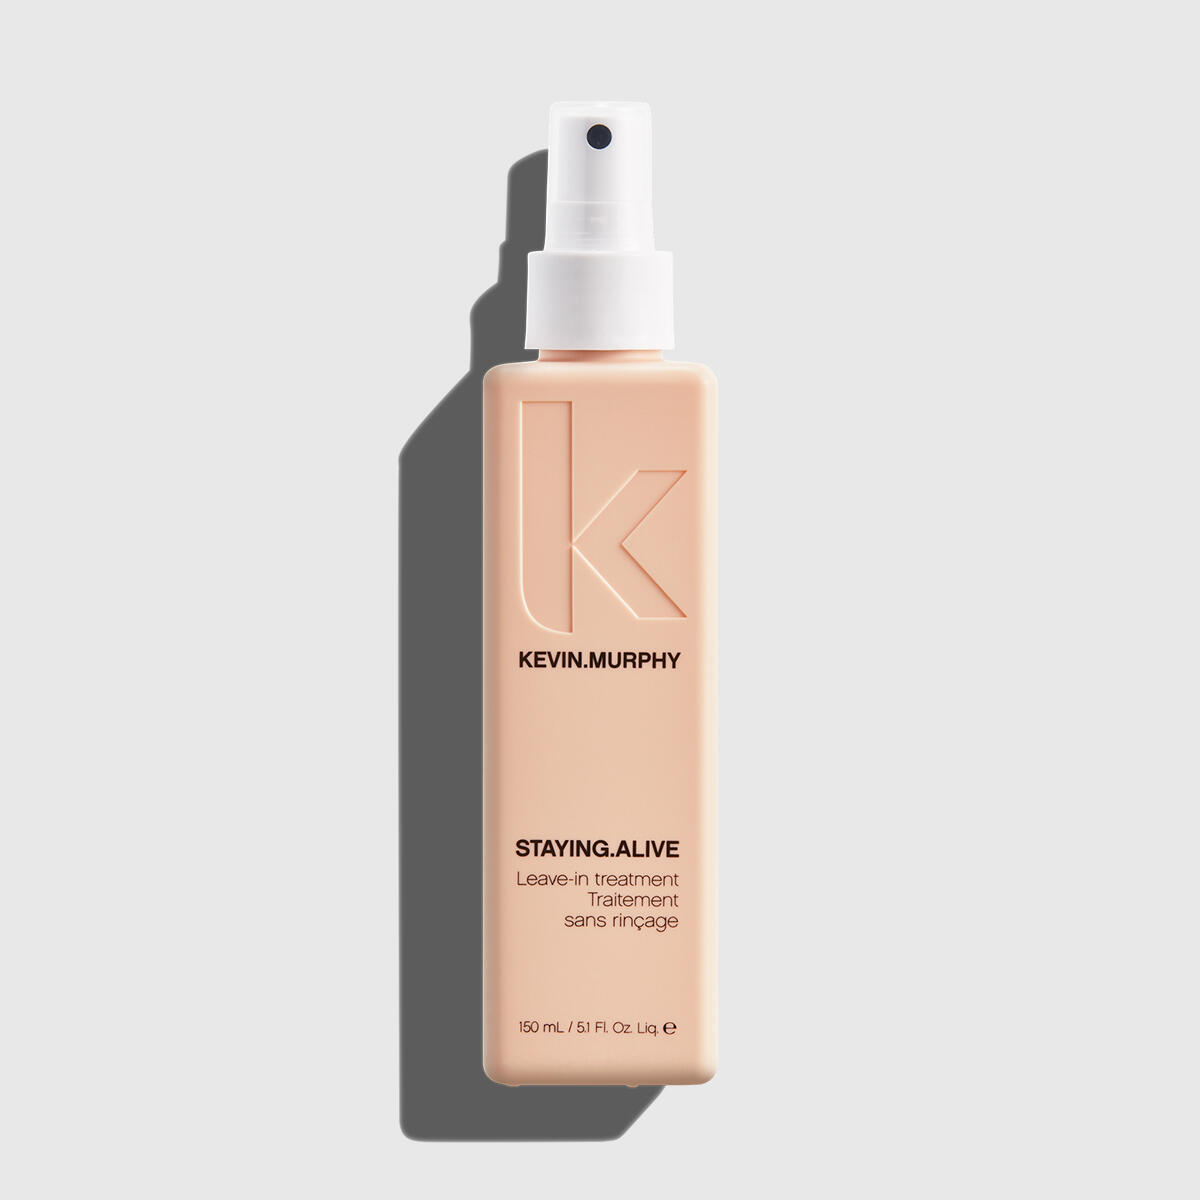 Kevin Murphy Staying Alive null